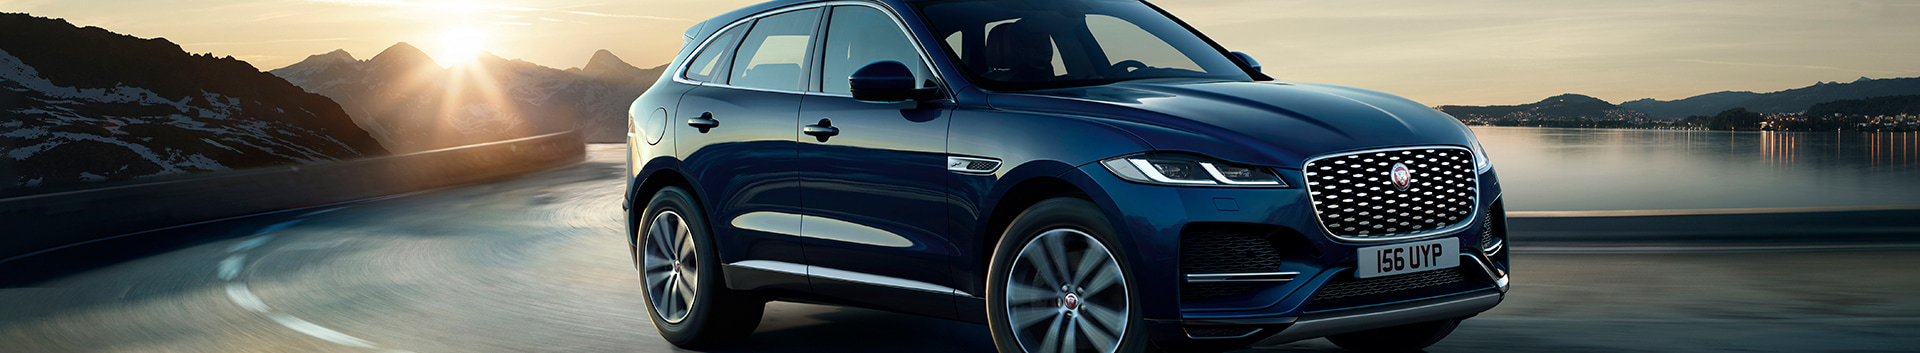 Front 3/4 exterior view of the 2021 Jaguar F-Pace driving across the highway